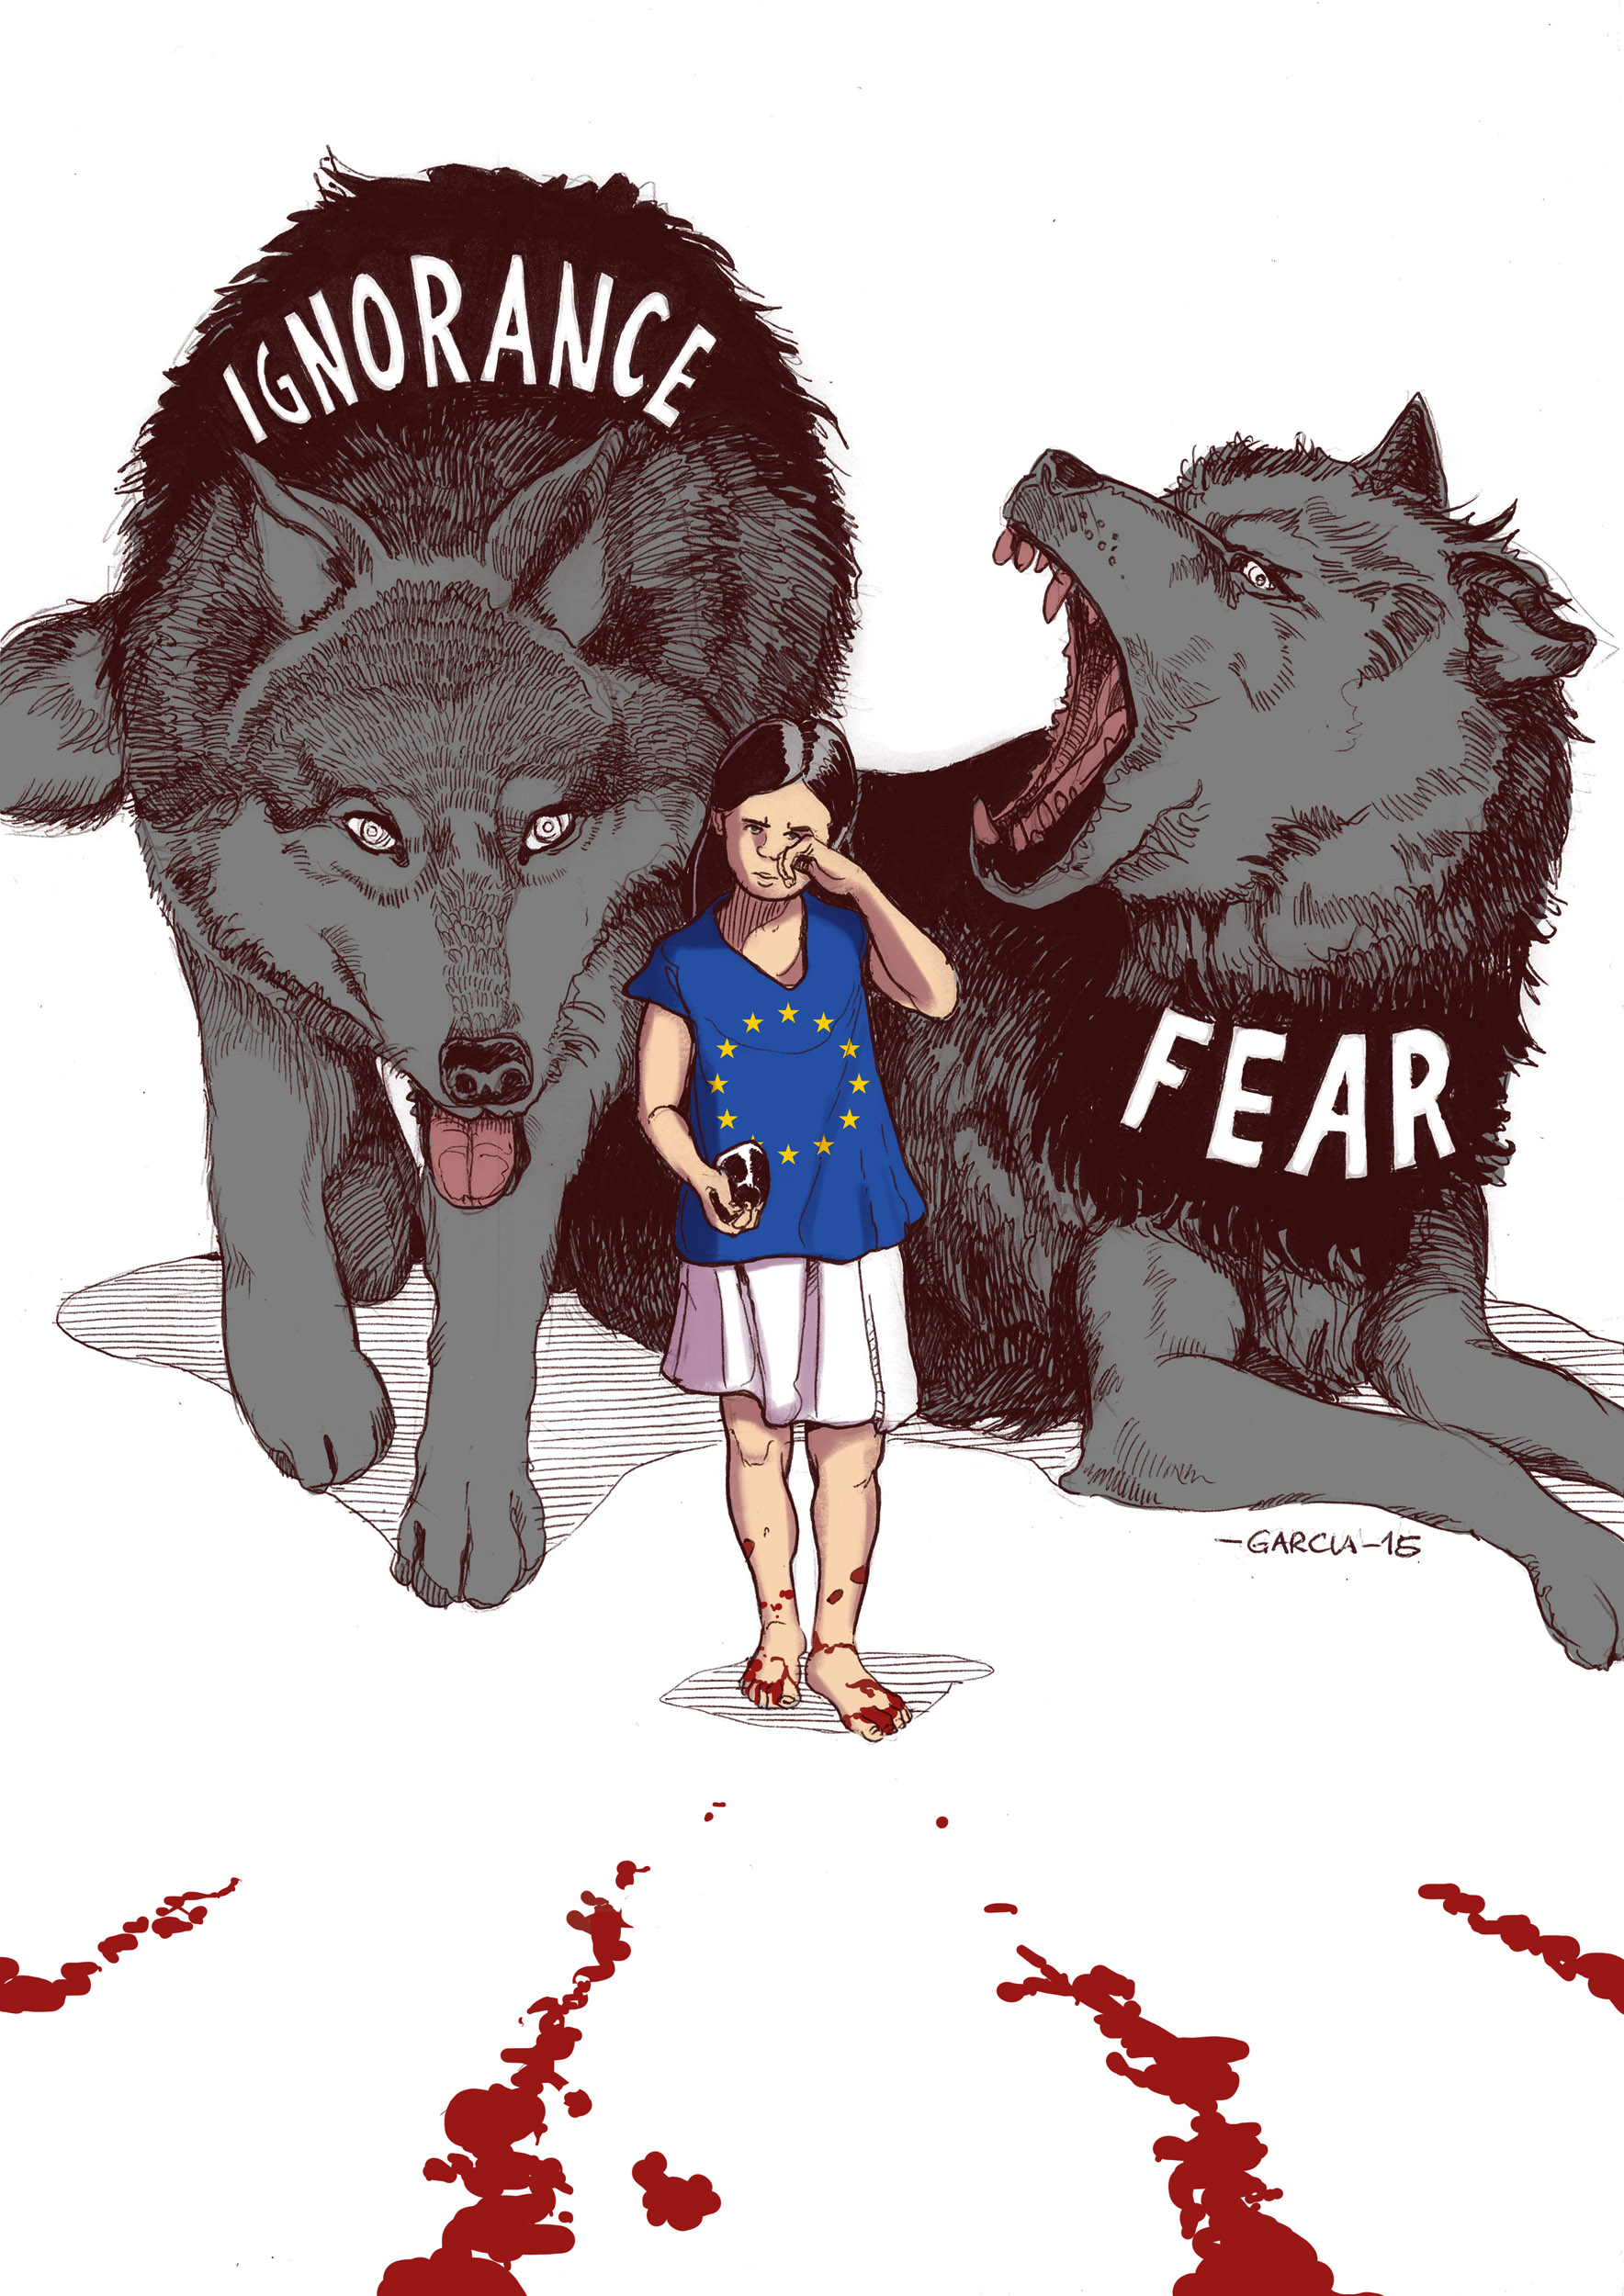 Daniel Garcia Illustration Ignorance Fear Paris Syria Plaestine Africa Terrorrism Bombings Innocents